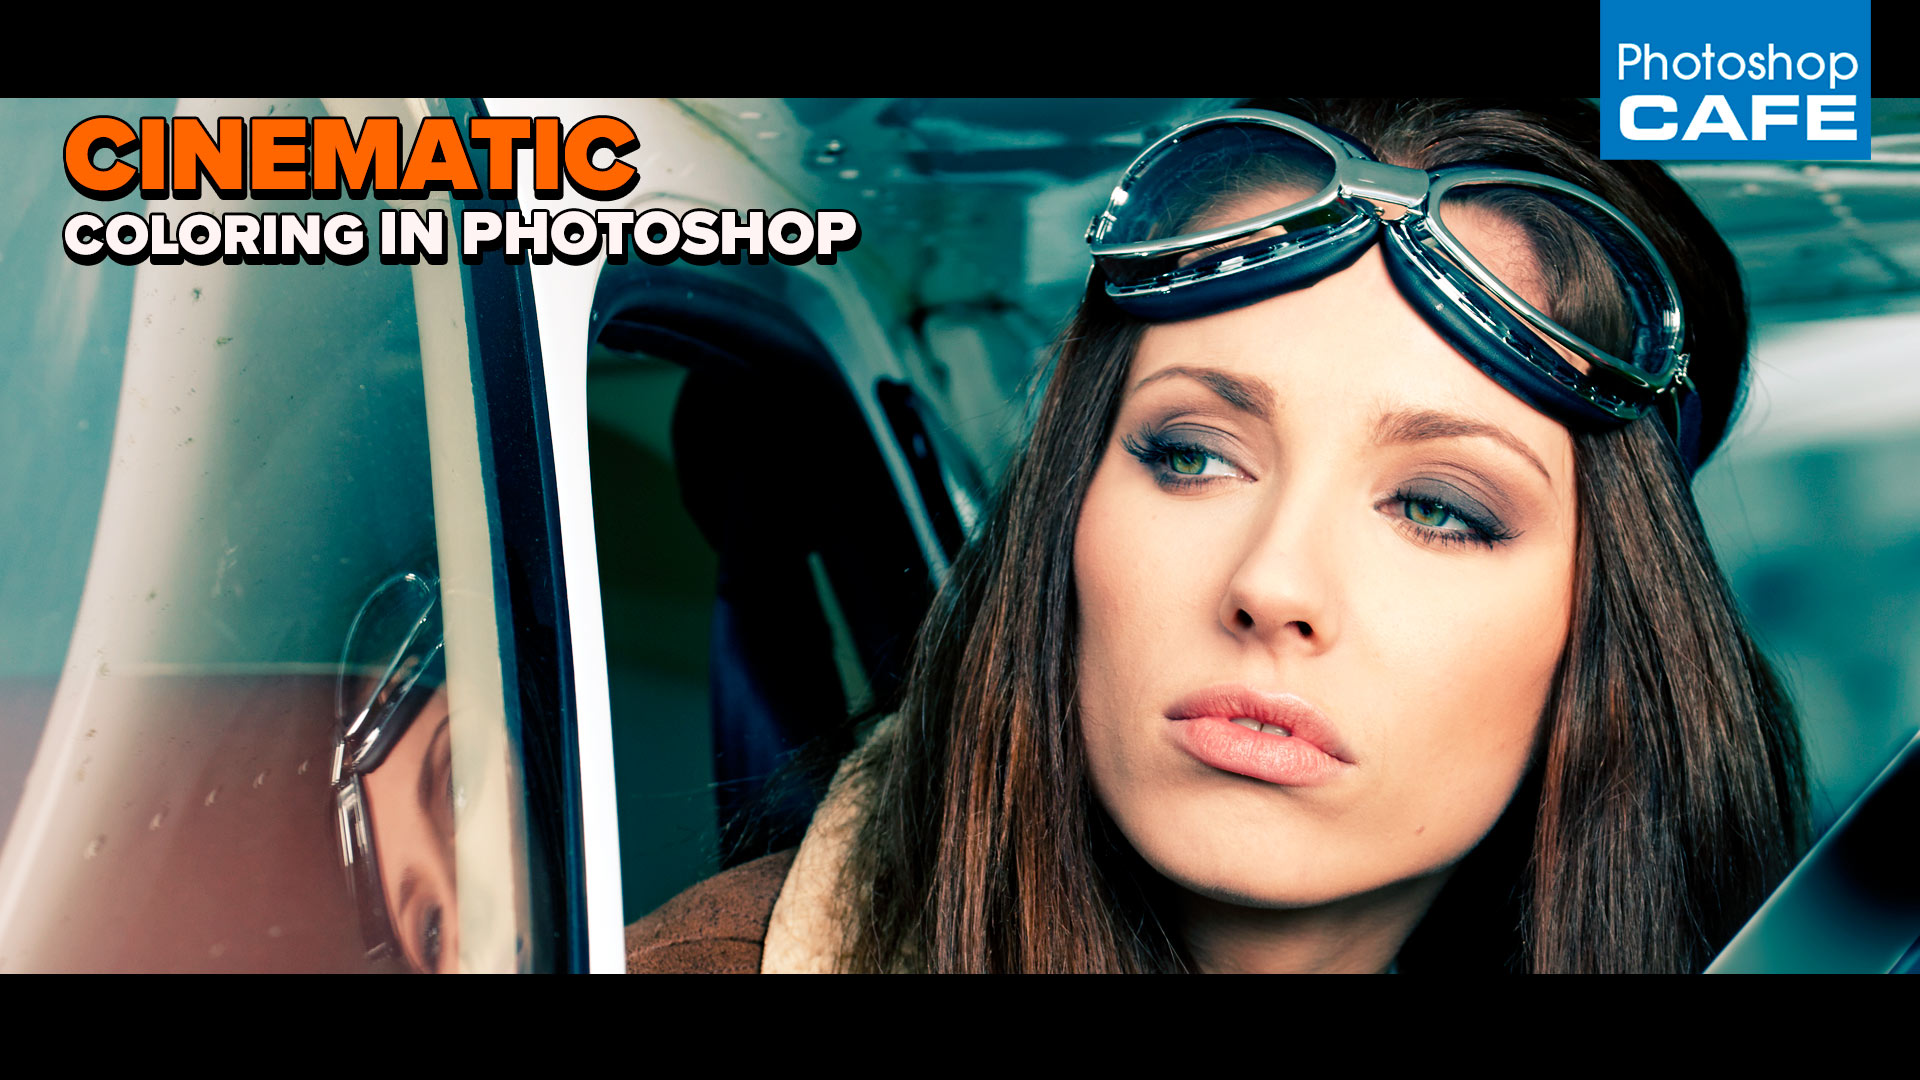 Lighting Effects Photoshop Cs6 How To Create Cinematic Color For Your Photos In Photoshop